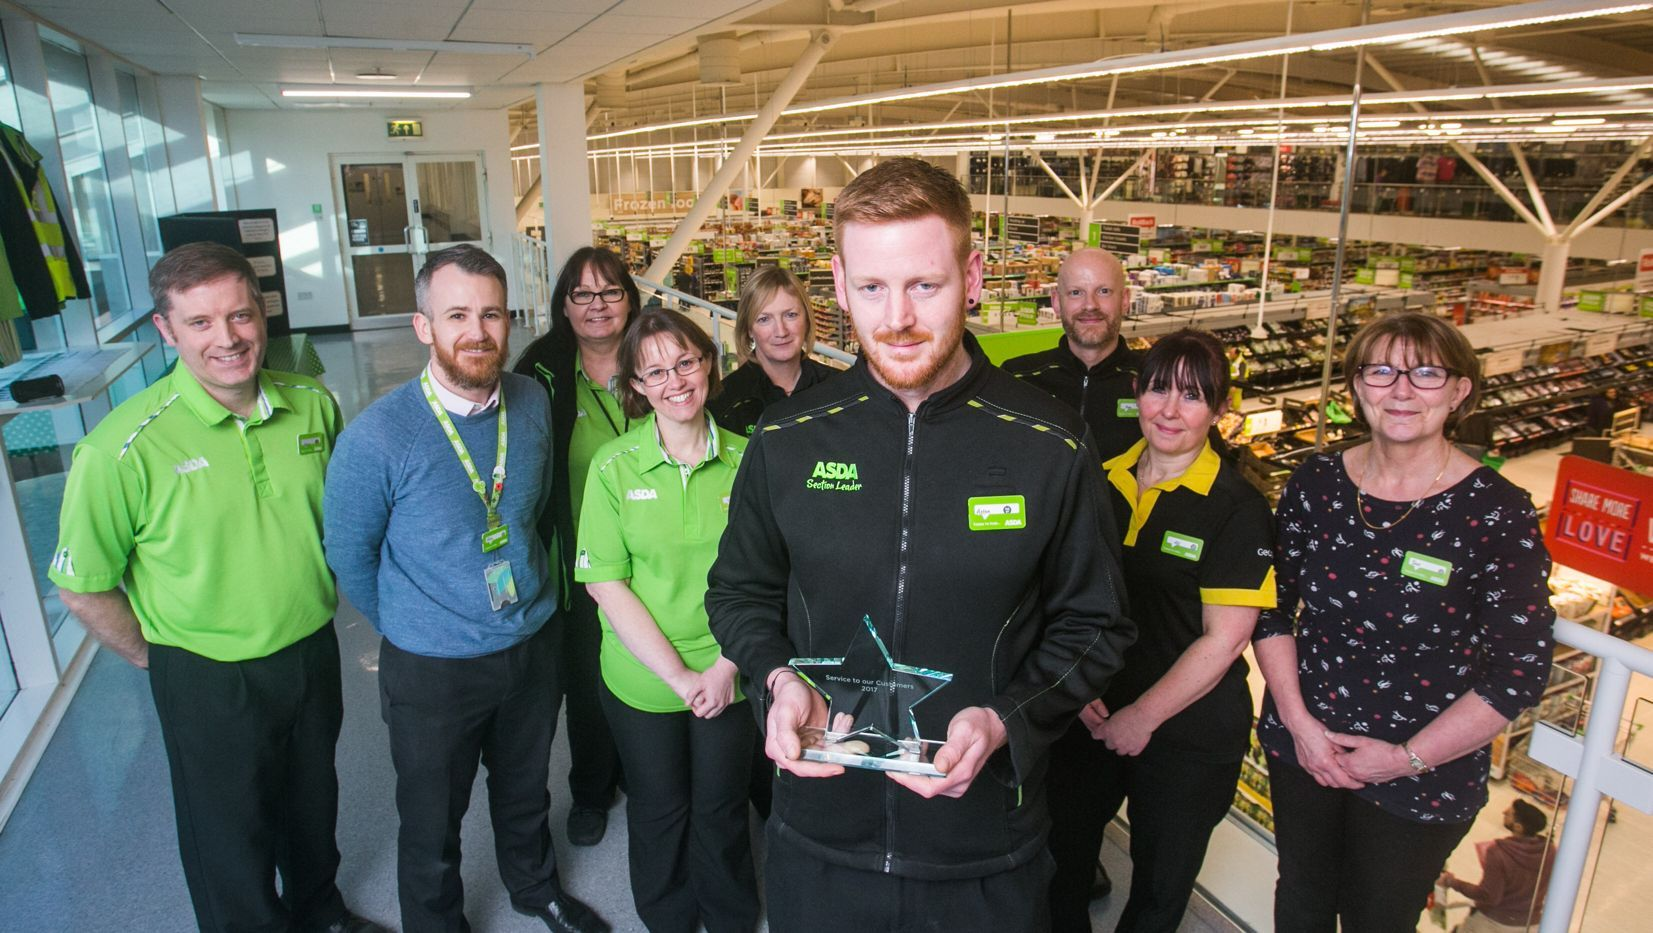 Award winning Aston Olver with some of his colleagues at Asda